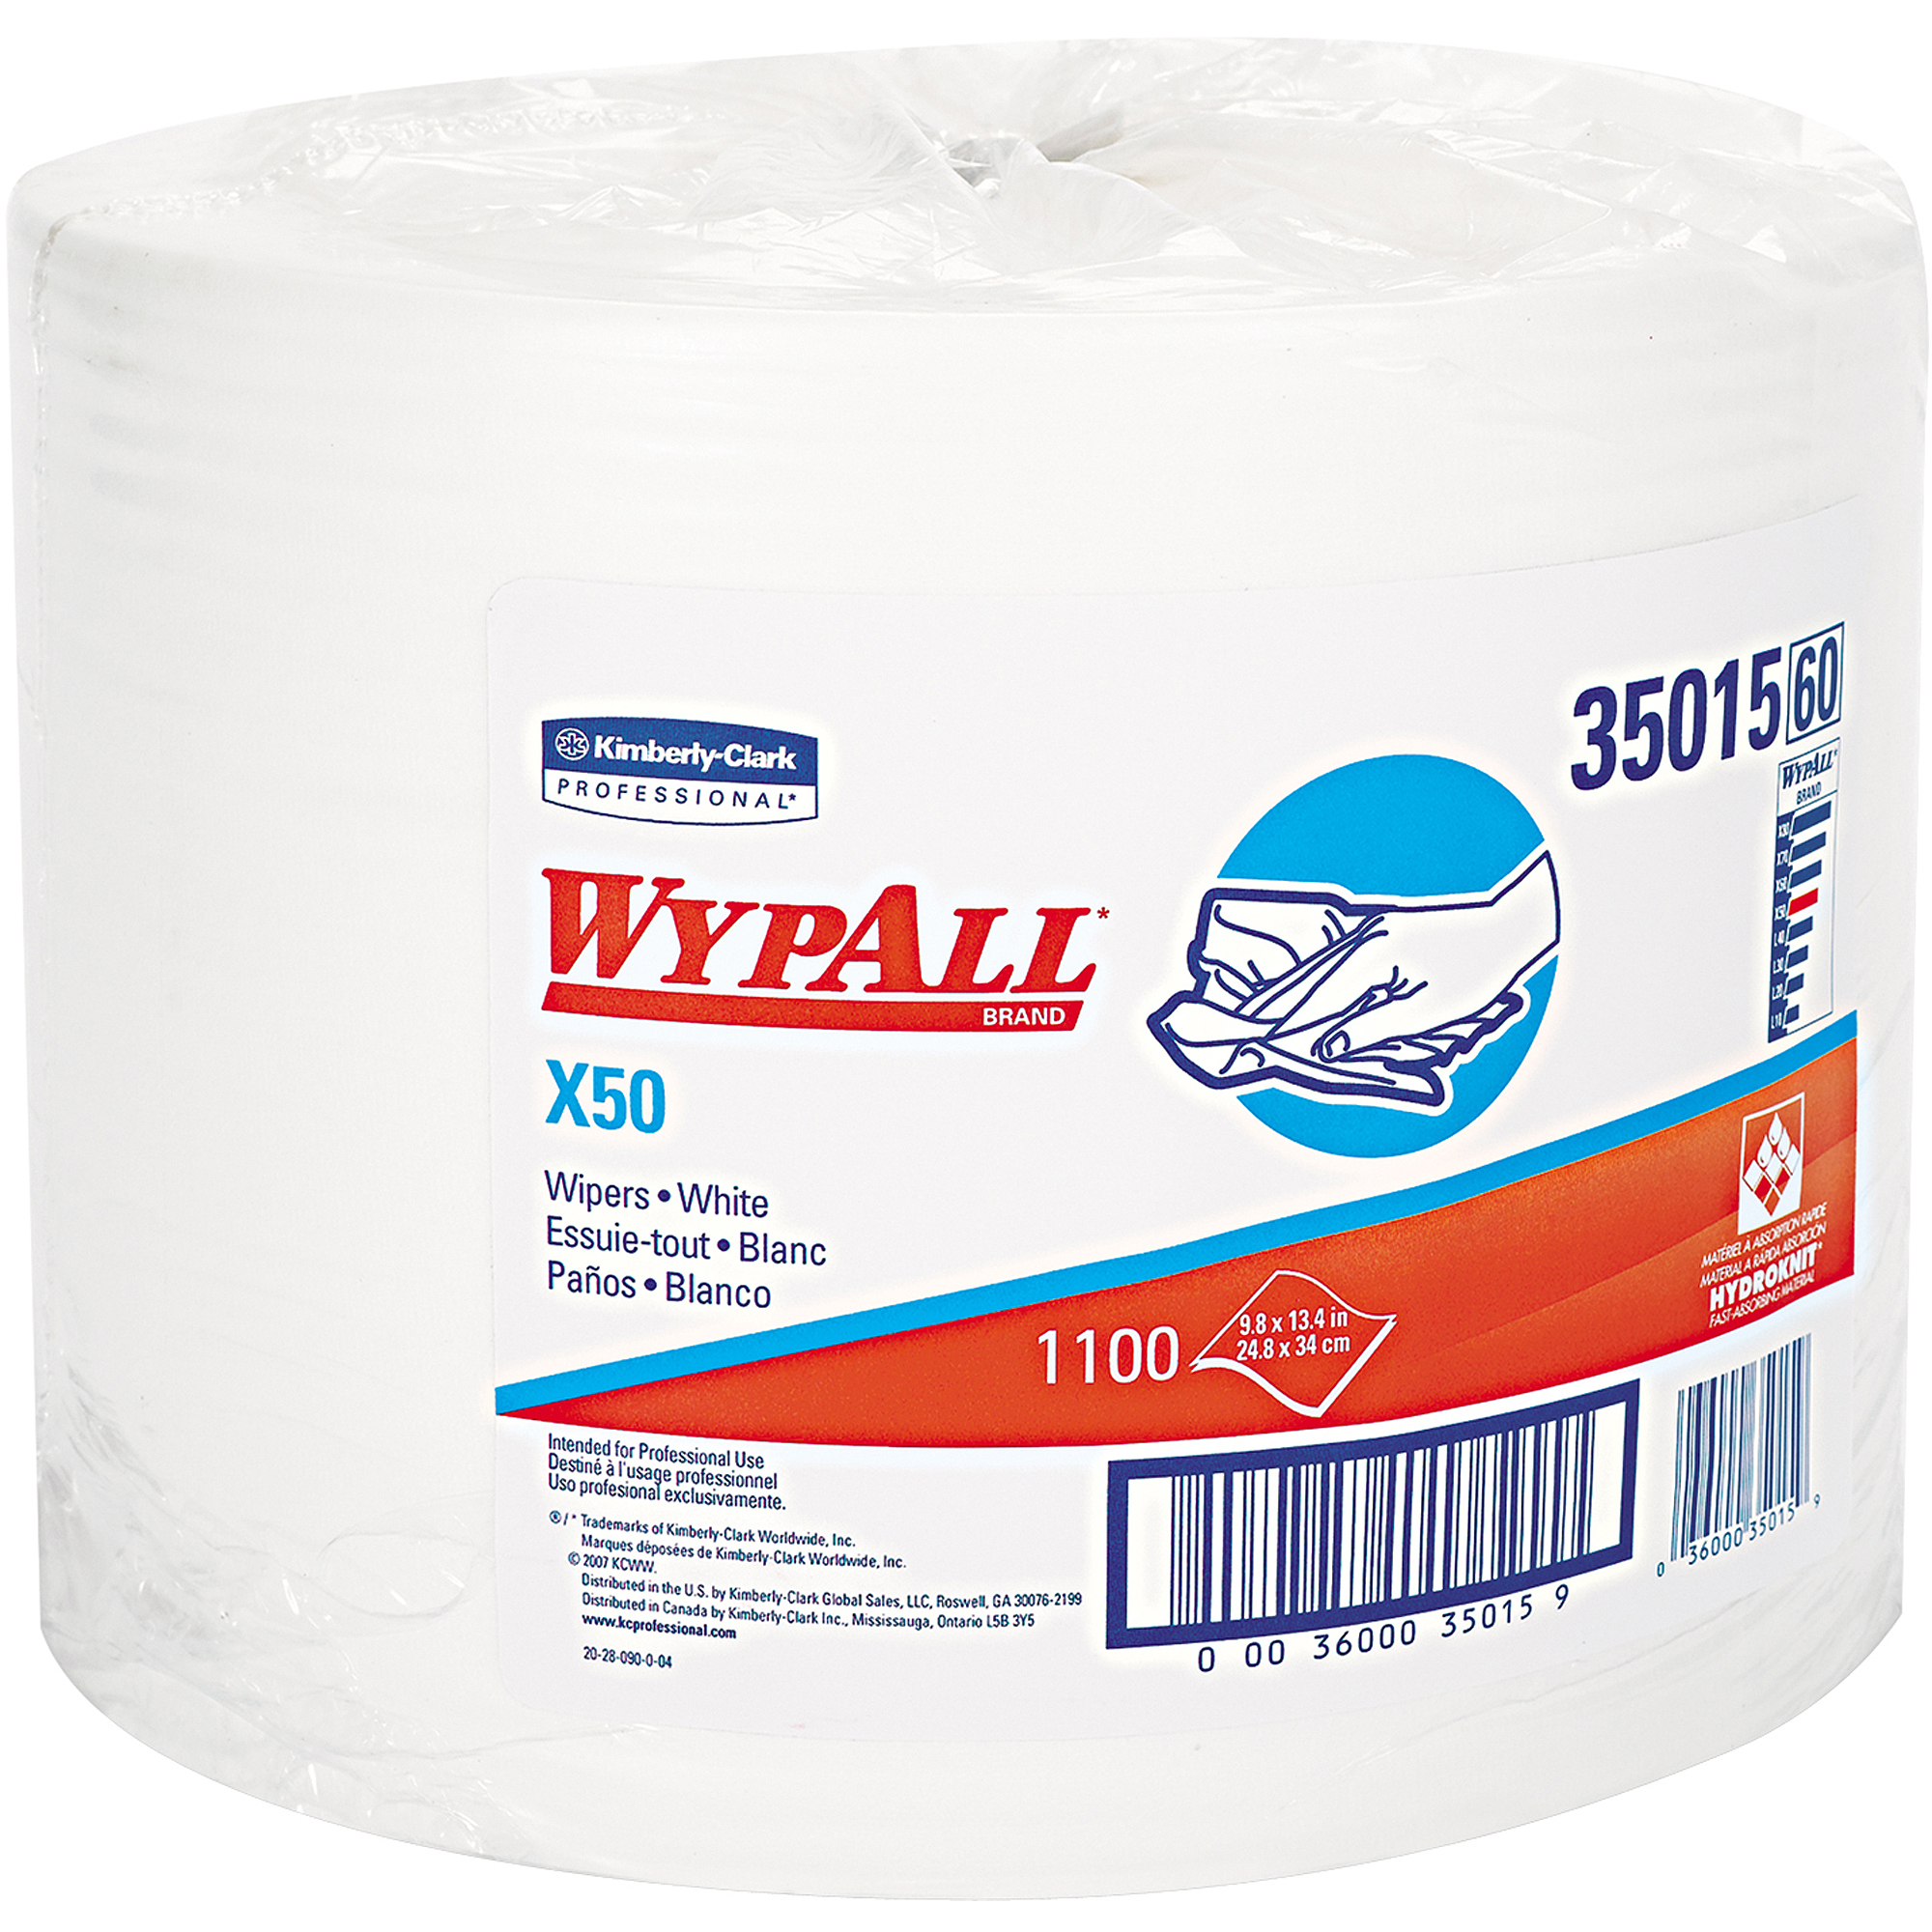 Kimberly-Clark Professional Wypall X50 Wipers, 1100 sheets